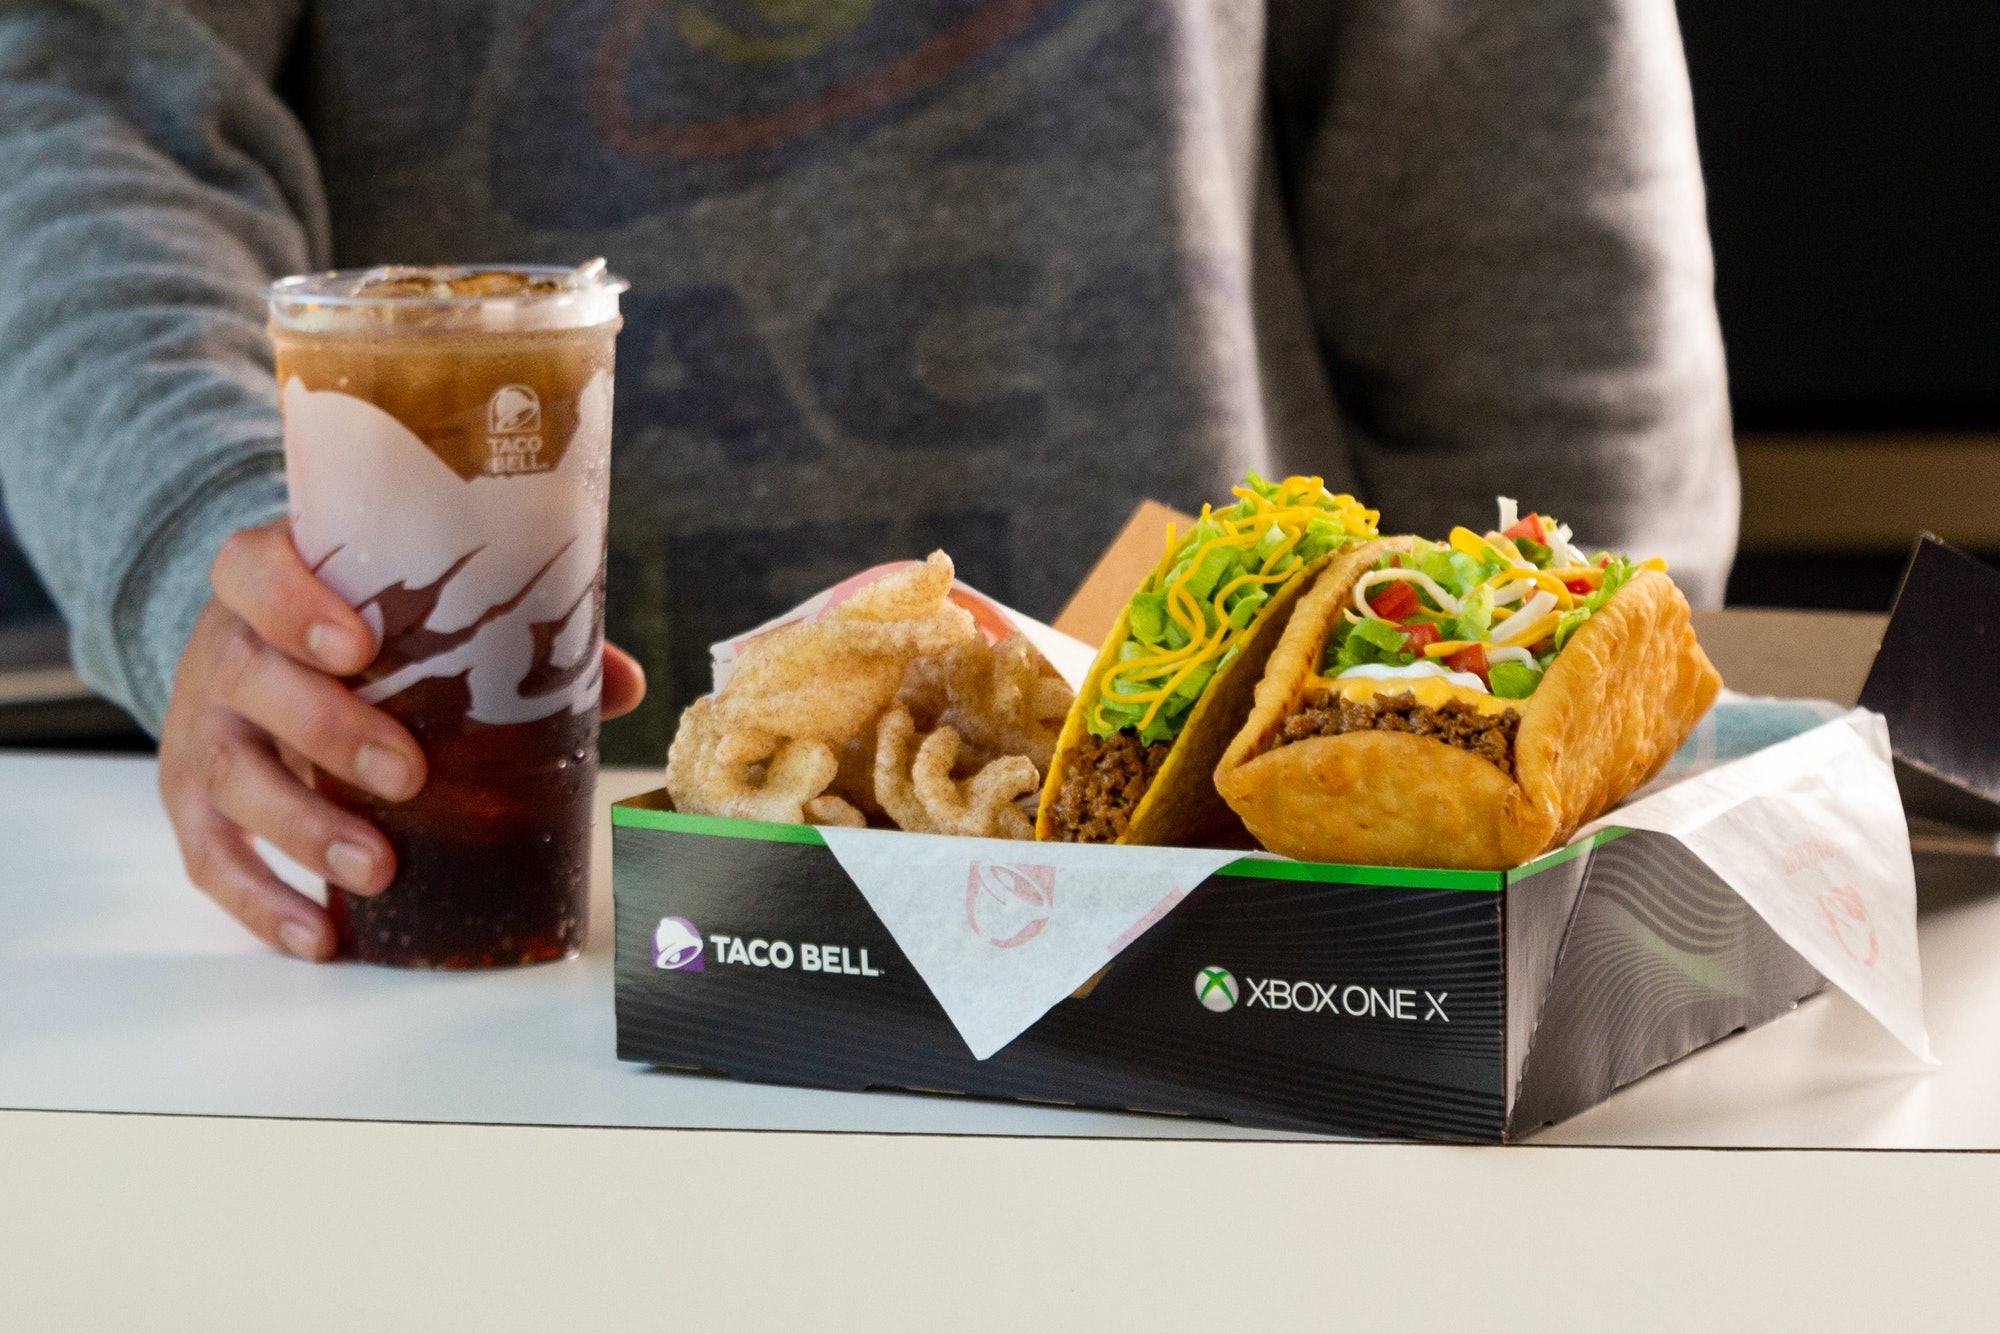 Xbox One X Taco Bell